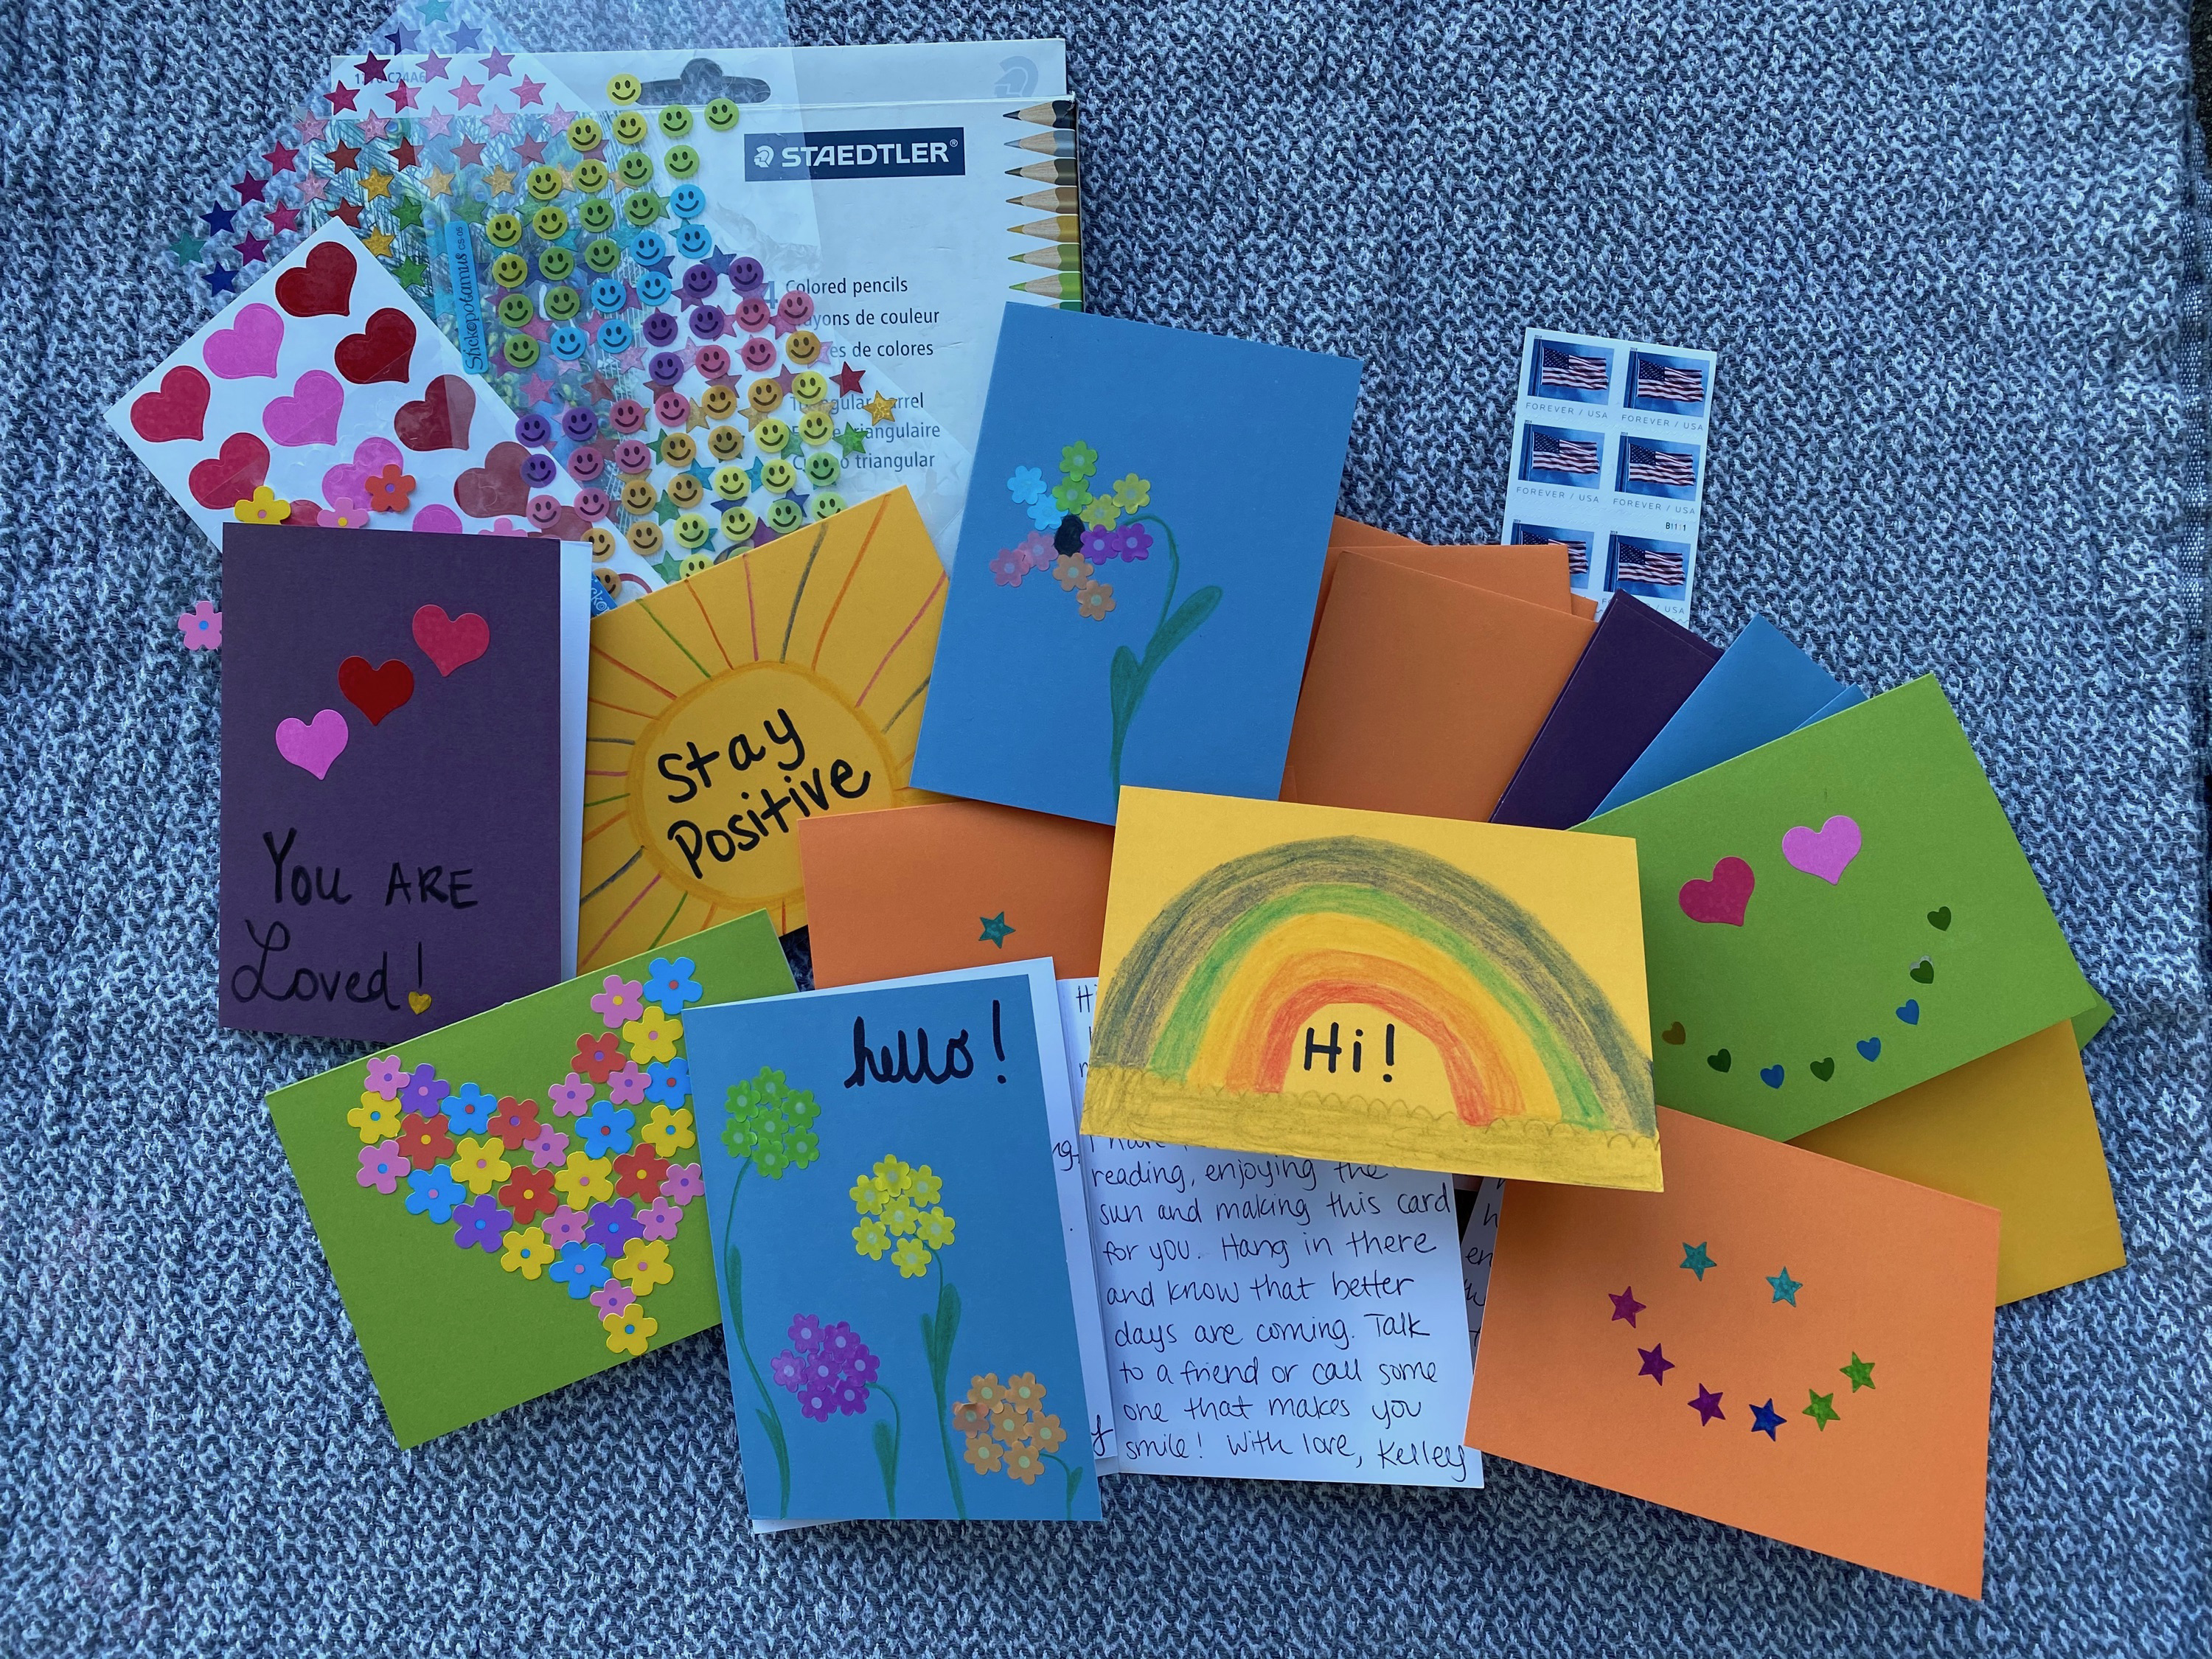 Two sisters wanted to lift lonely seniors' spirits. Their organization has sent 14,000 letters